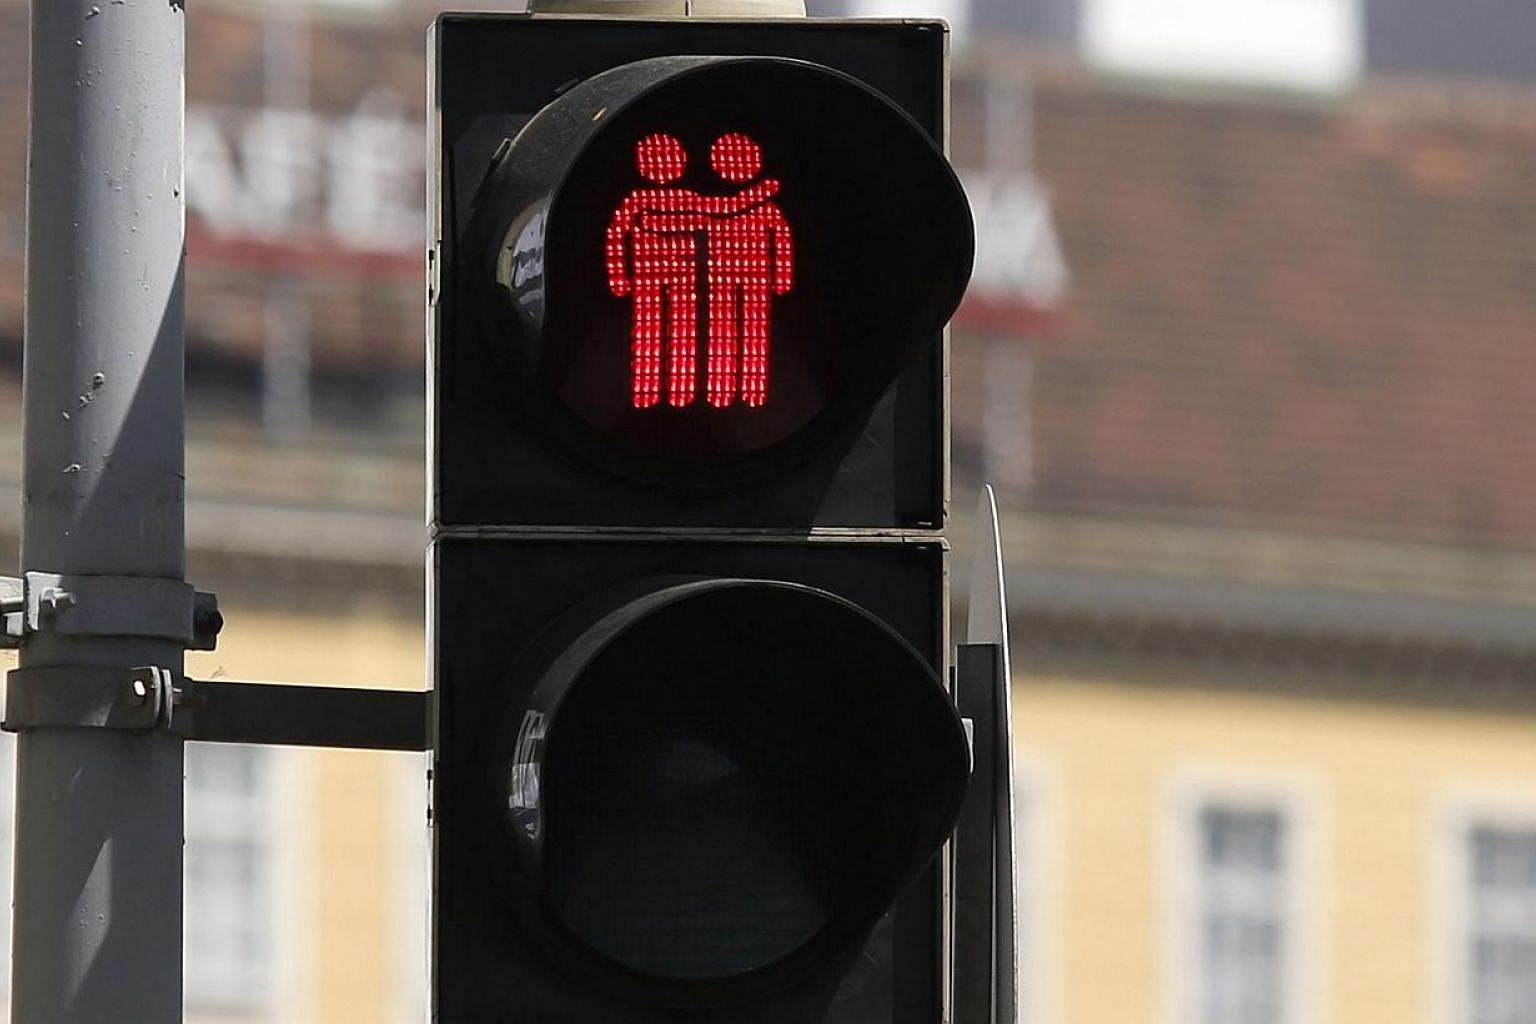 A new traffic light, showing a same-sex couple, is pictured on May 12, 2015 in Vienna.Gay-themed traffic lights installed in Vienna for the 2015 Eurovision Song Contest have proven so popular that authorities have now decided to keep them for g